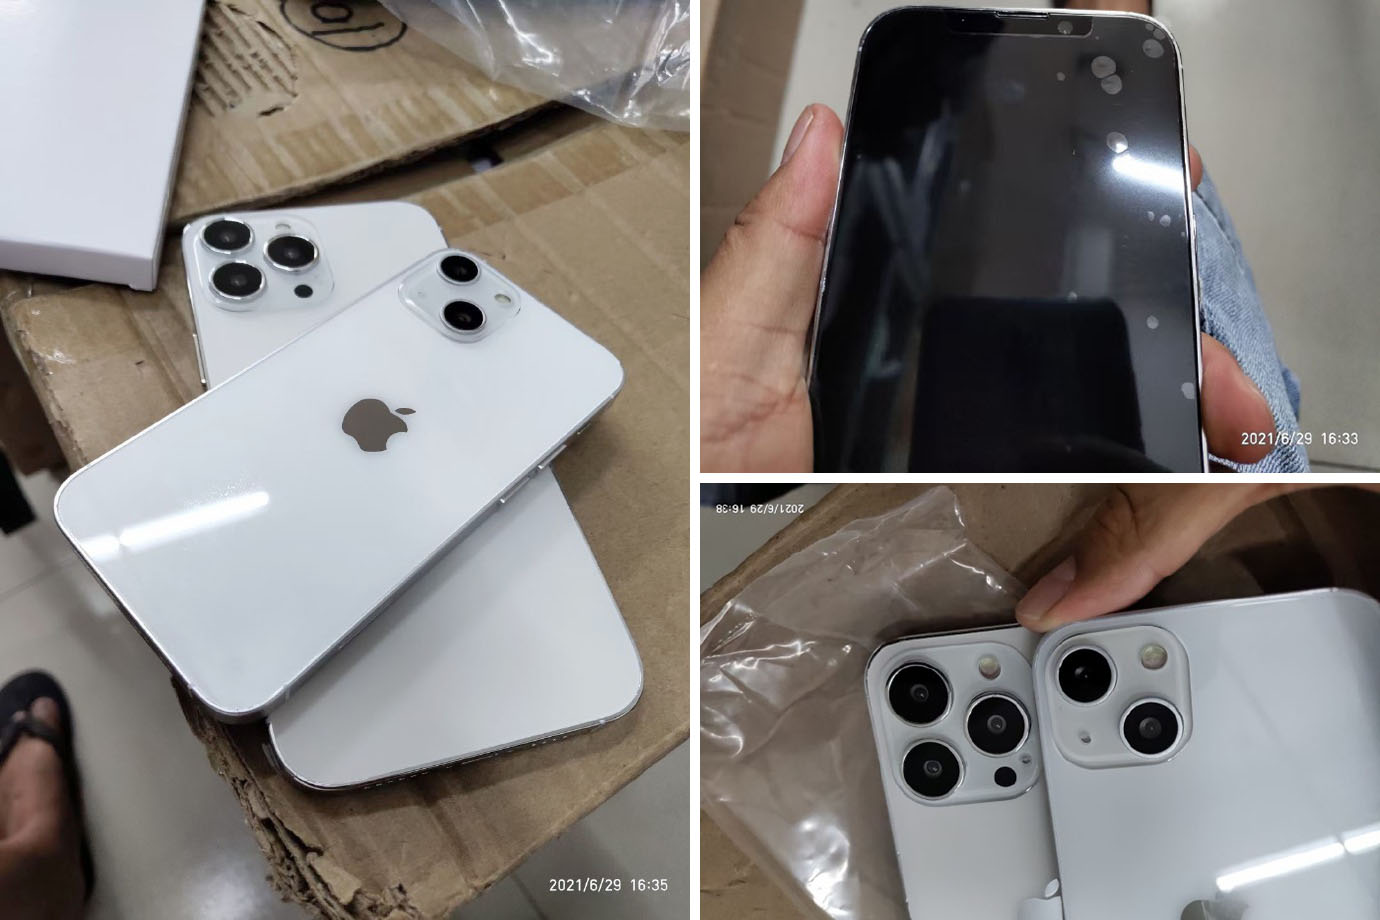 iPhone 13 dummy models show smaller notch, new cameras - 9to5Mac